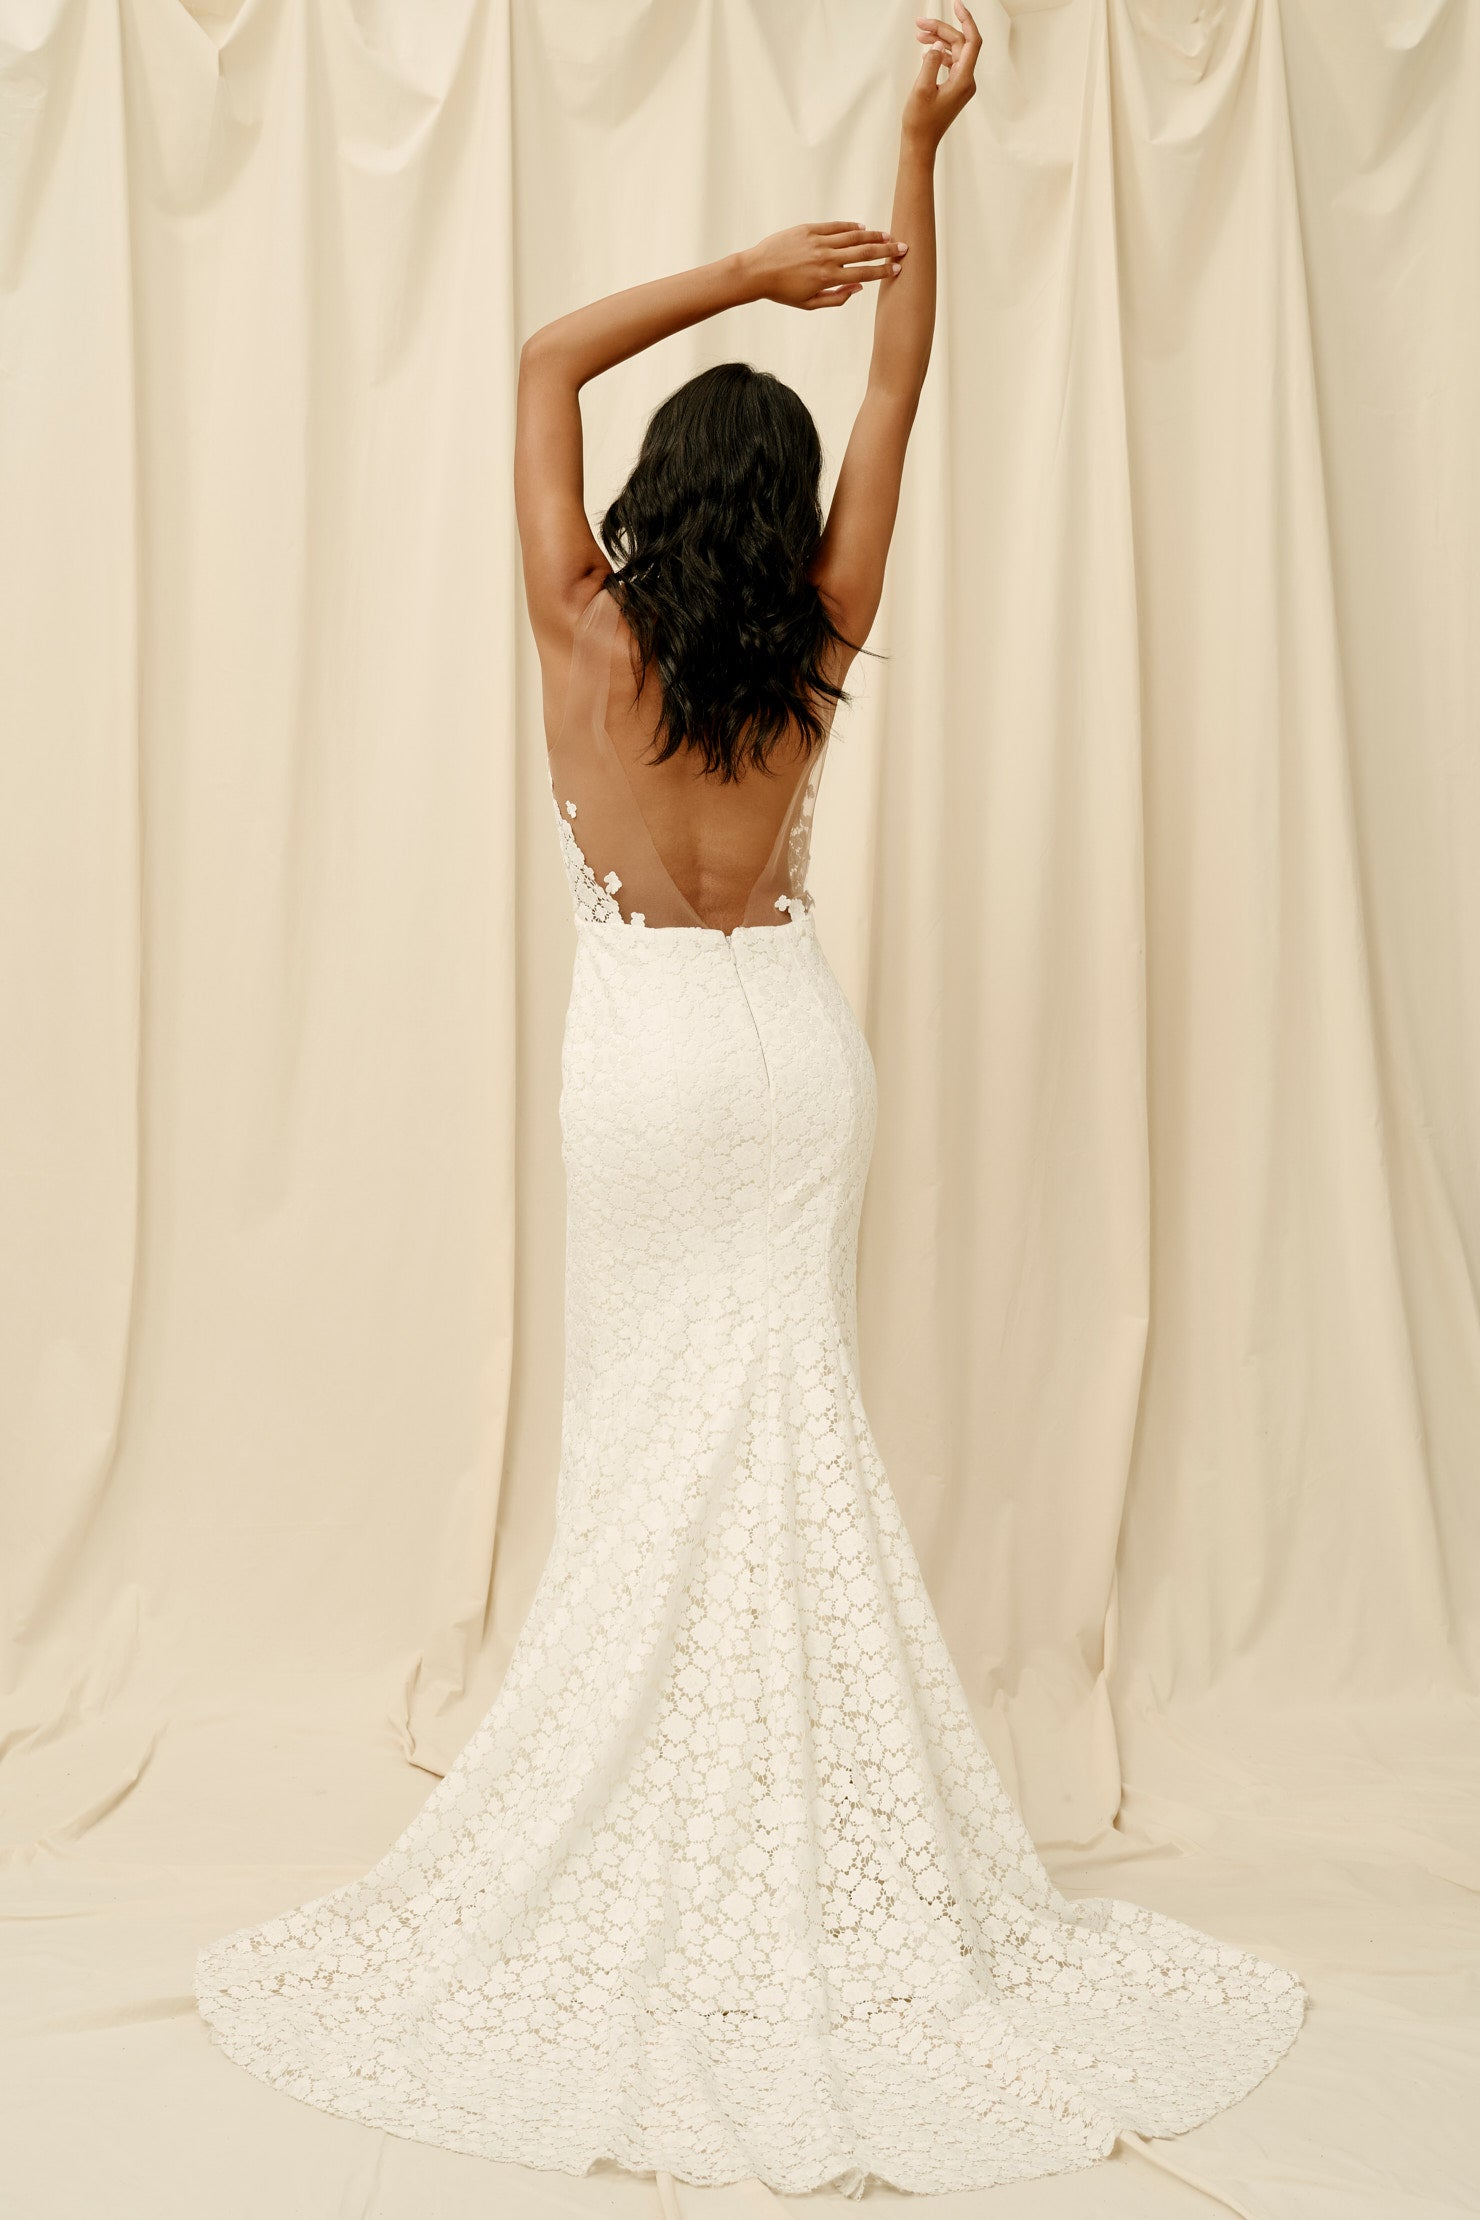 Backless lace wedding dress with a fitted skirt and long train